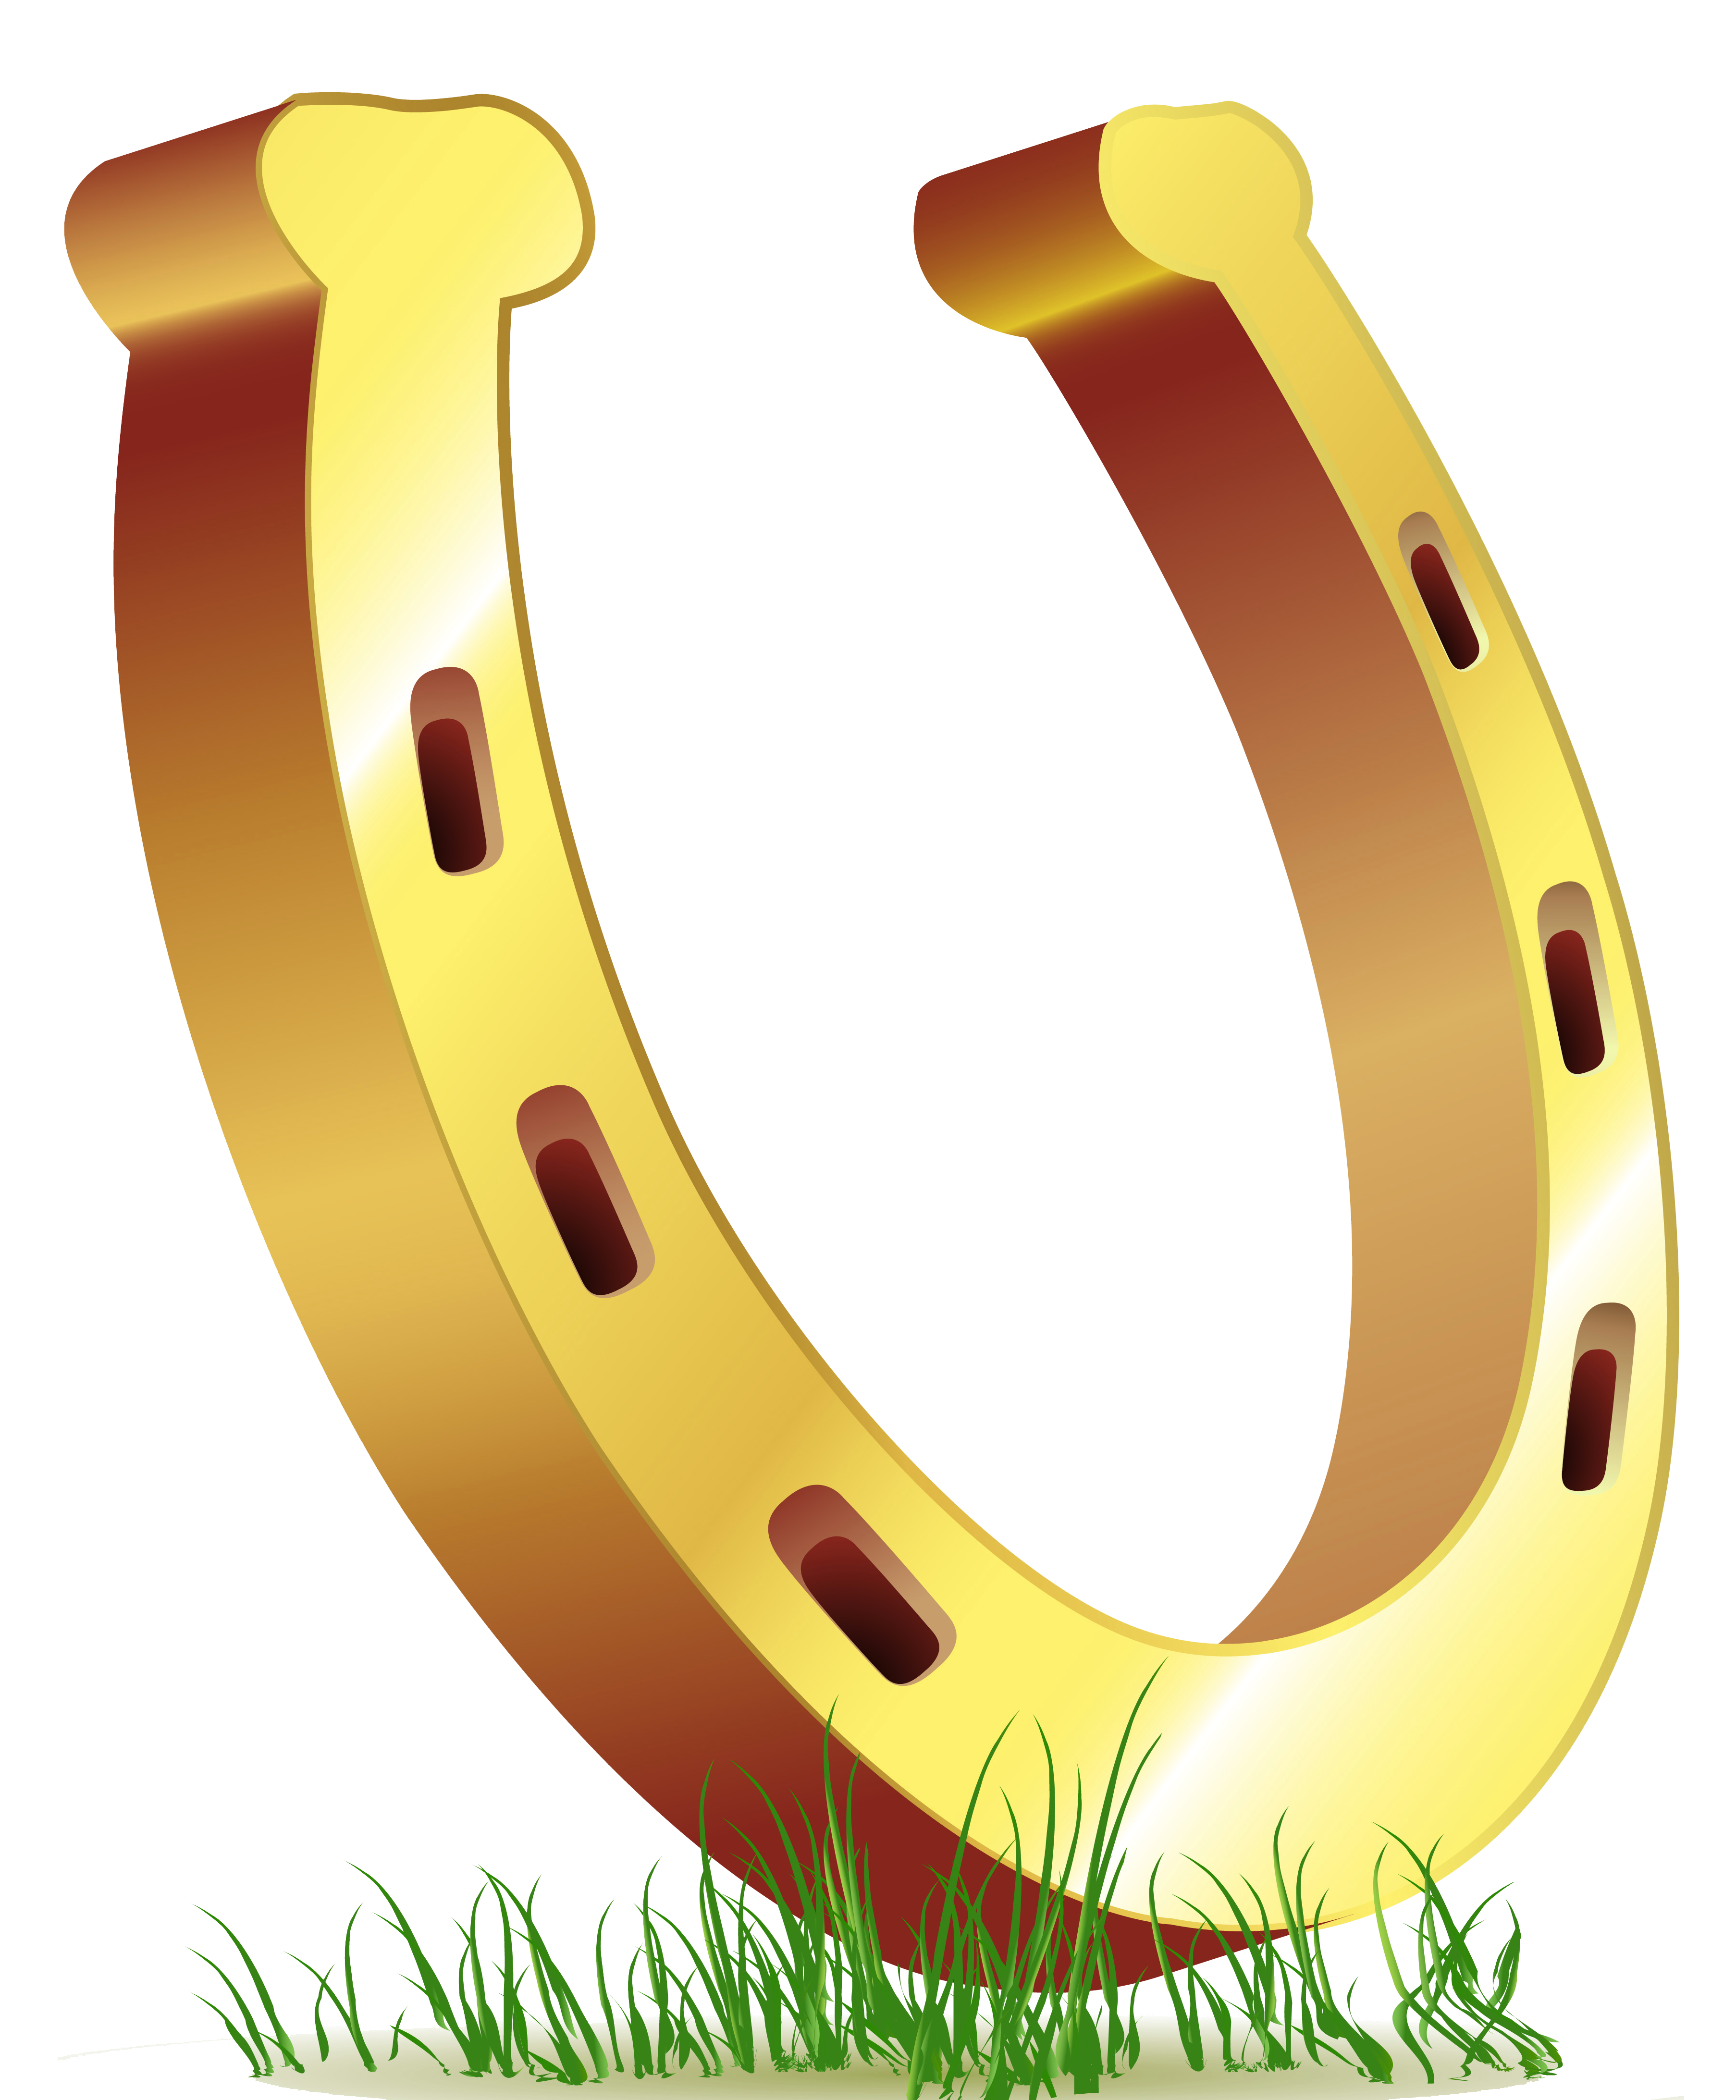 Free Horseshoe Clipart Cliparts And Othe-Free horseshoe clipart cliparts and others art inspiration-0